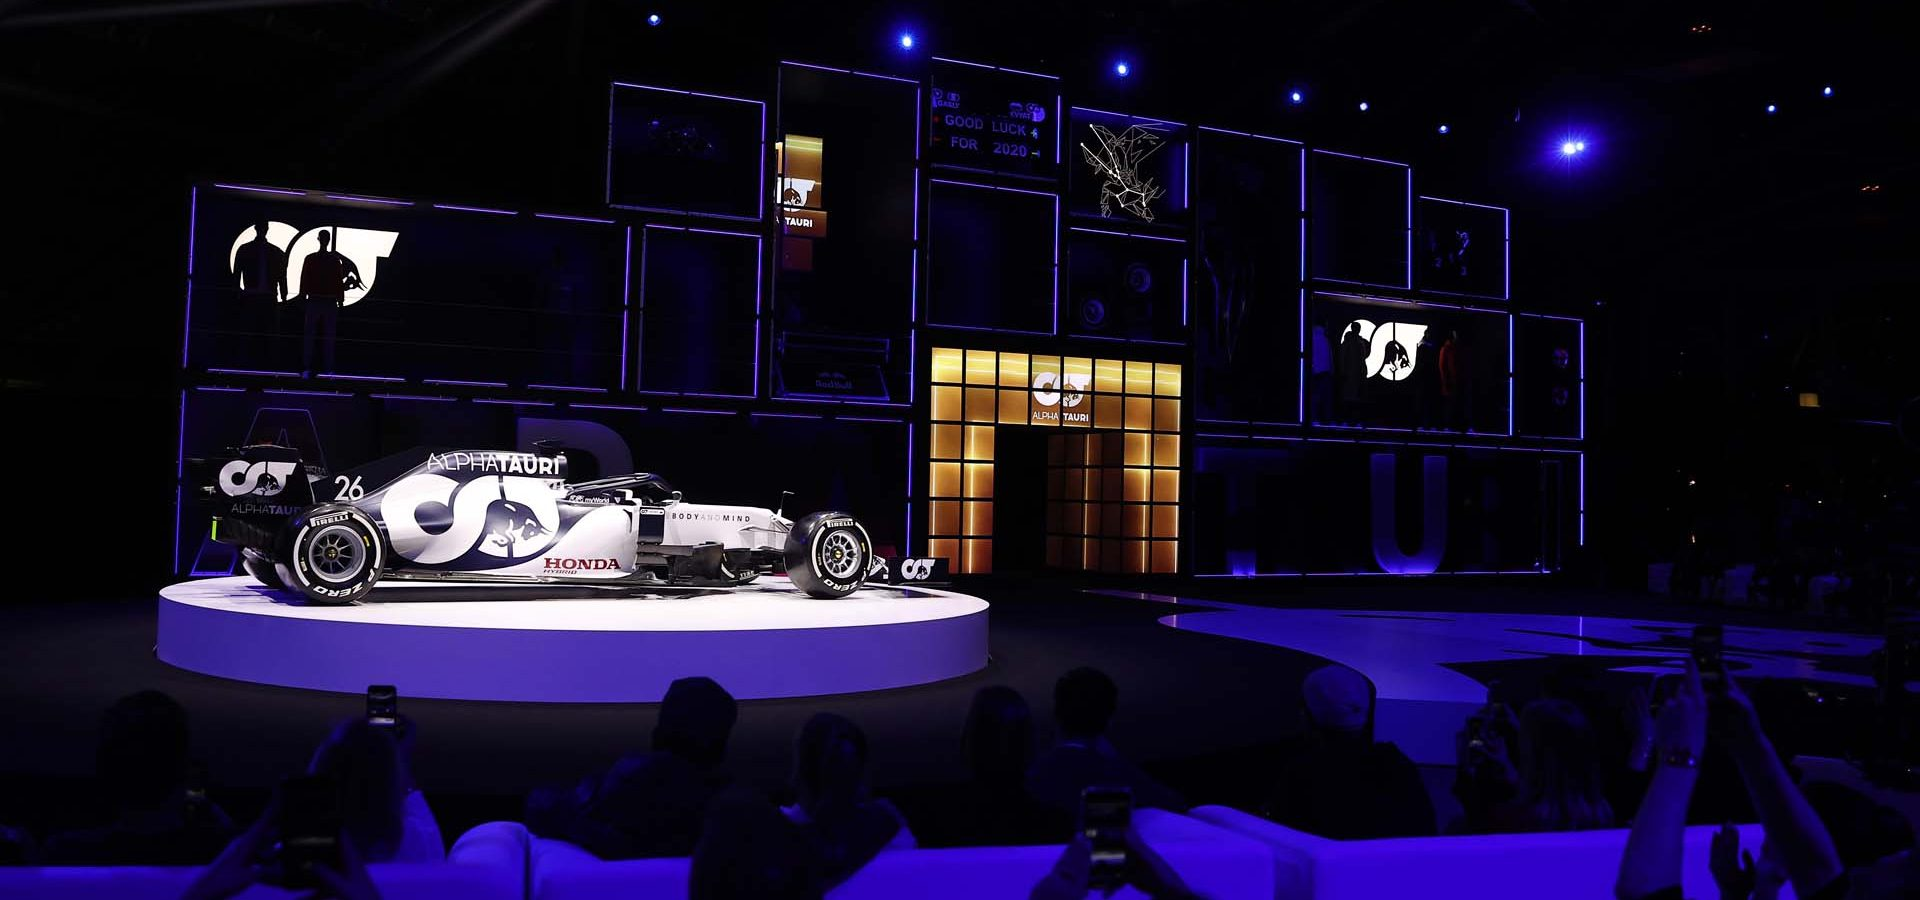 SALZBURG, AUSTRIA - FEBRUARY 14: General view as the Car is revealed during the Scuderia AlphaTauri AT01 Livery launch on February 14, 2020 in Salzburg, Austria.  (Photo by Lars Baron/Getty Images) // Getty Images / Red Bull Content Pool  // AP-2342Y7SG52111 // Usage for editorial use only //